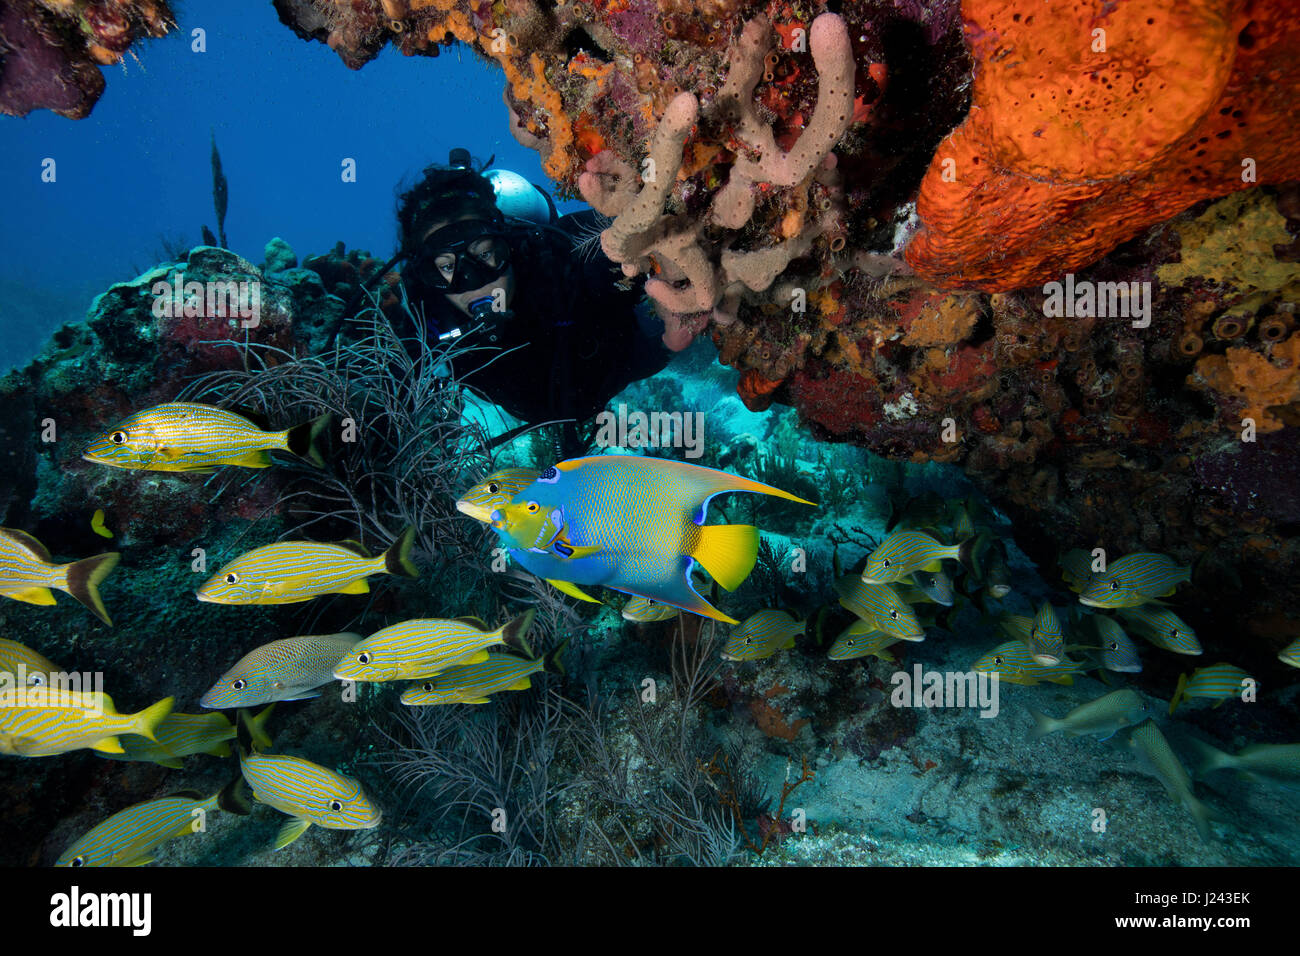 Reef scene with scuba diver and schooling fish. - Stock-Bilder